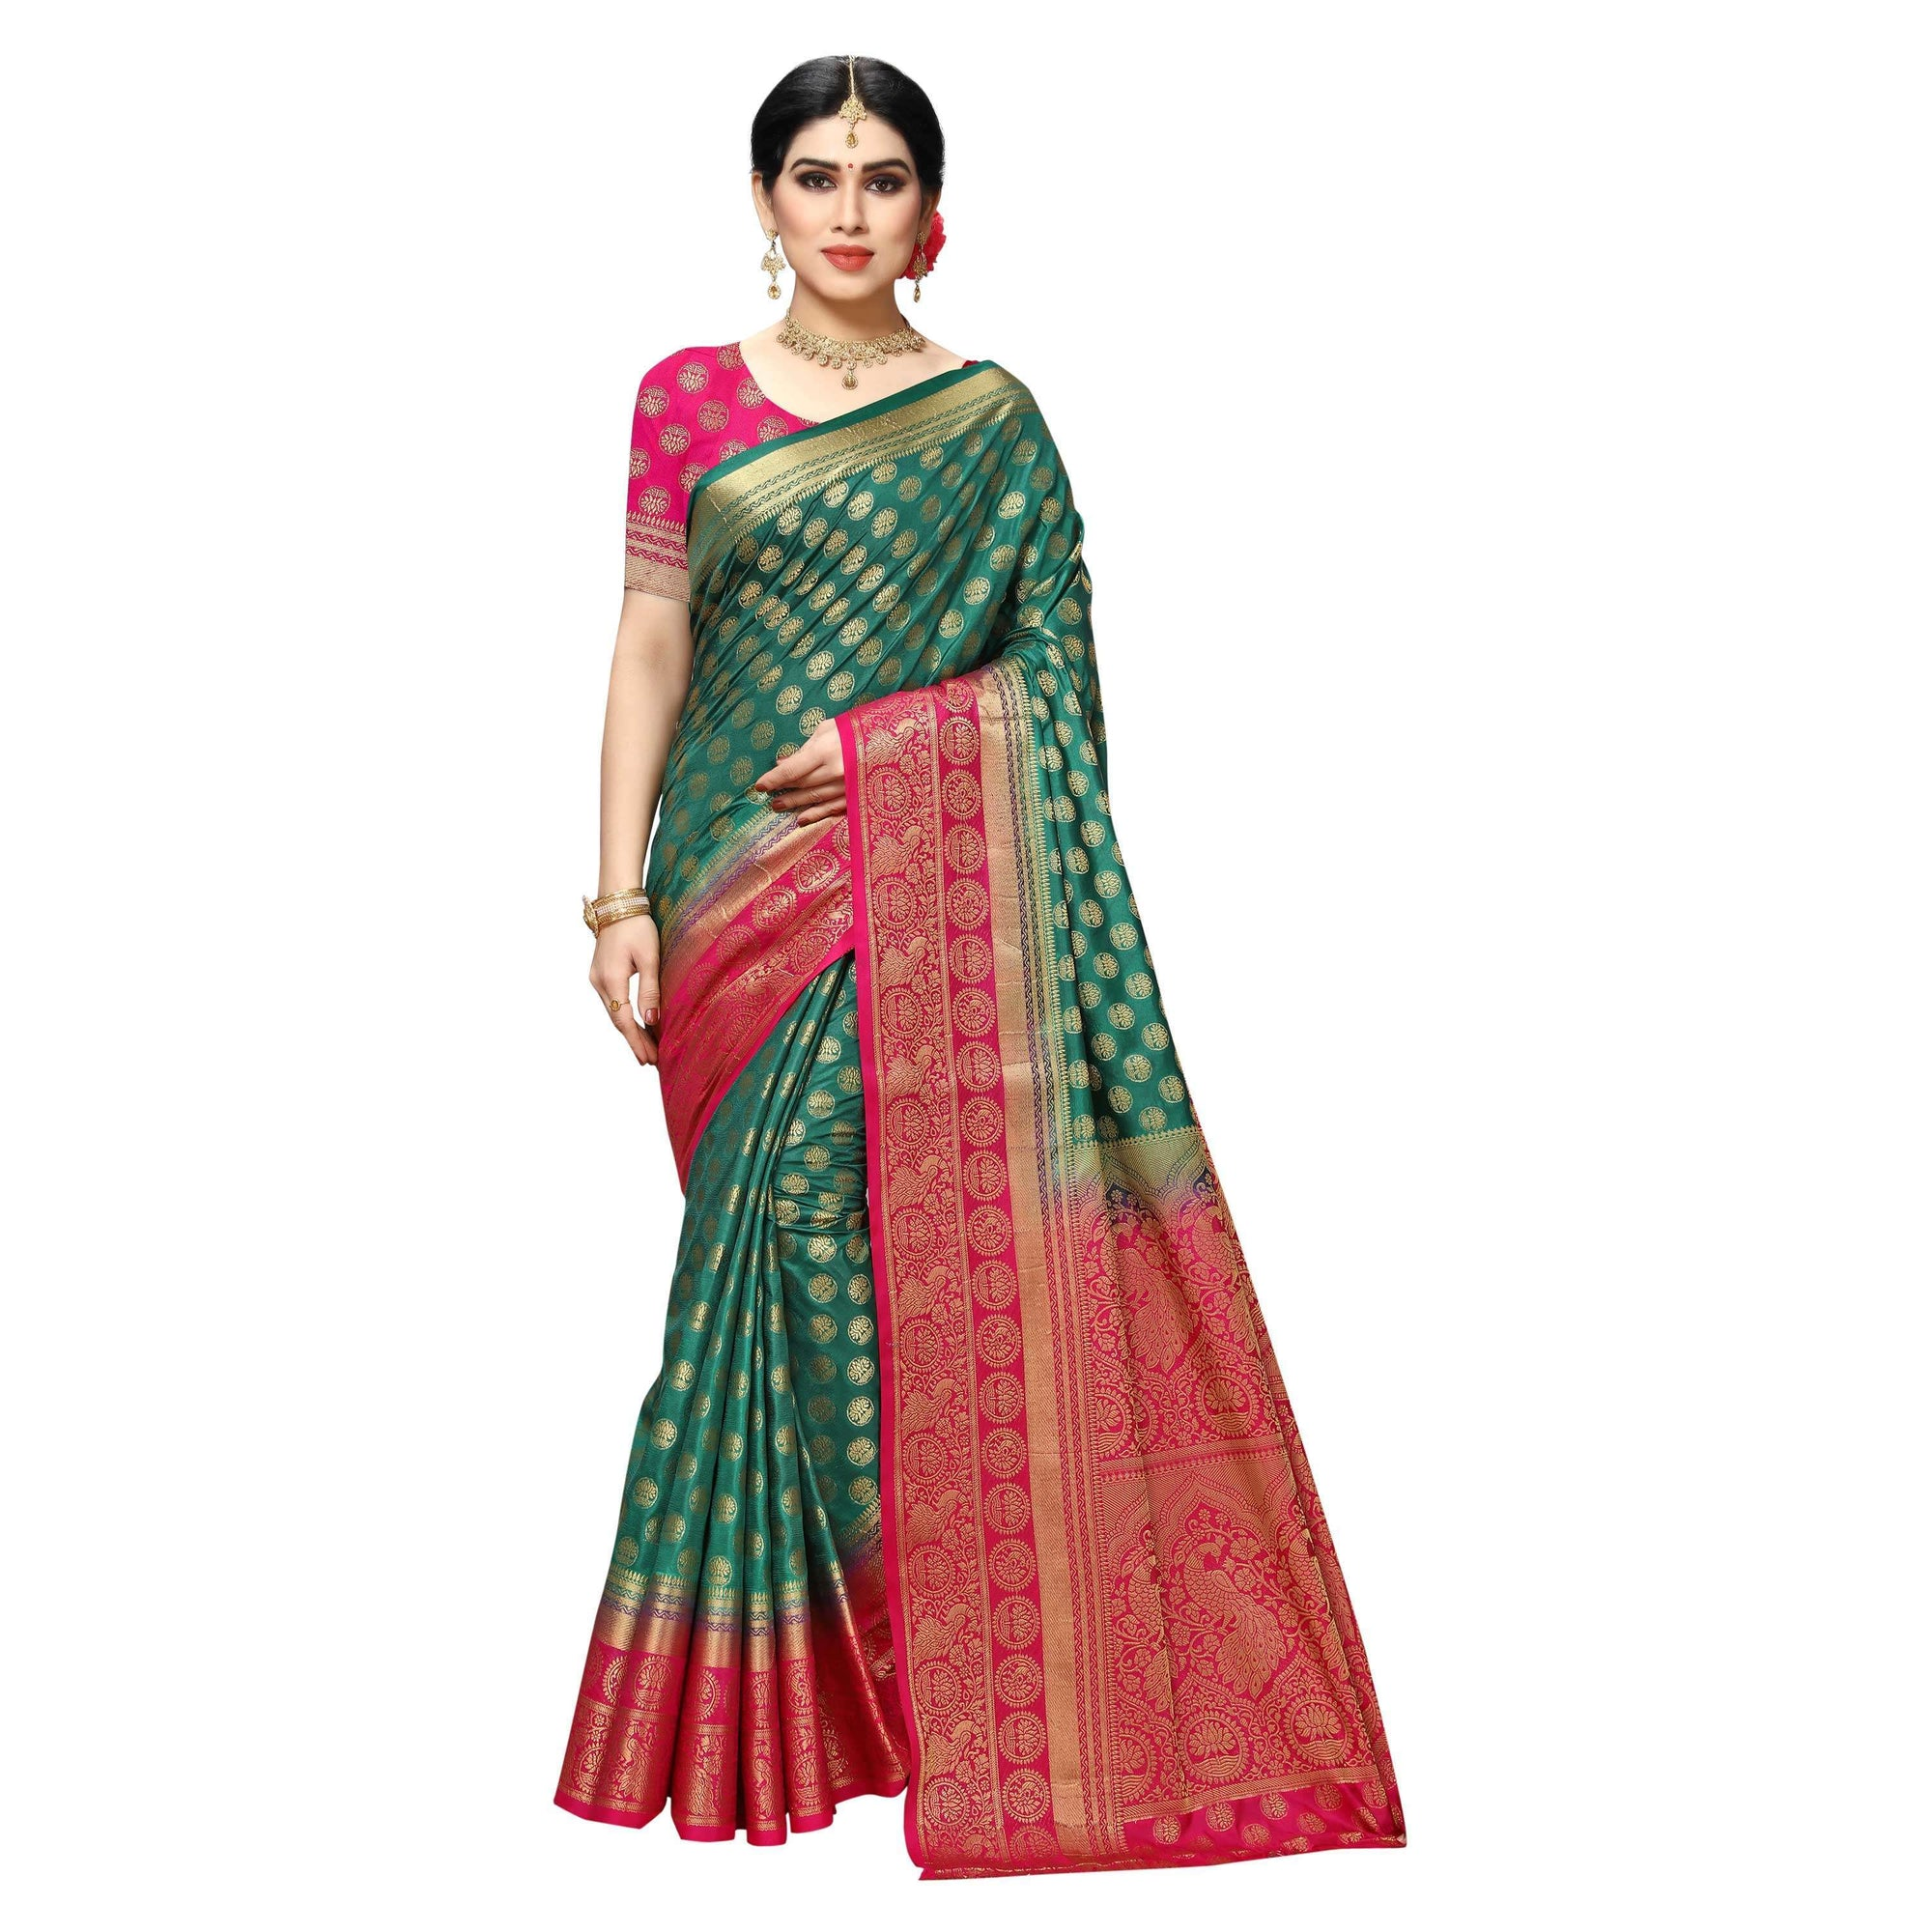 arars Women's kanchipuram kanjivaram pattu style art silk saree with blouse (445,green)